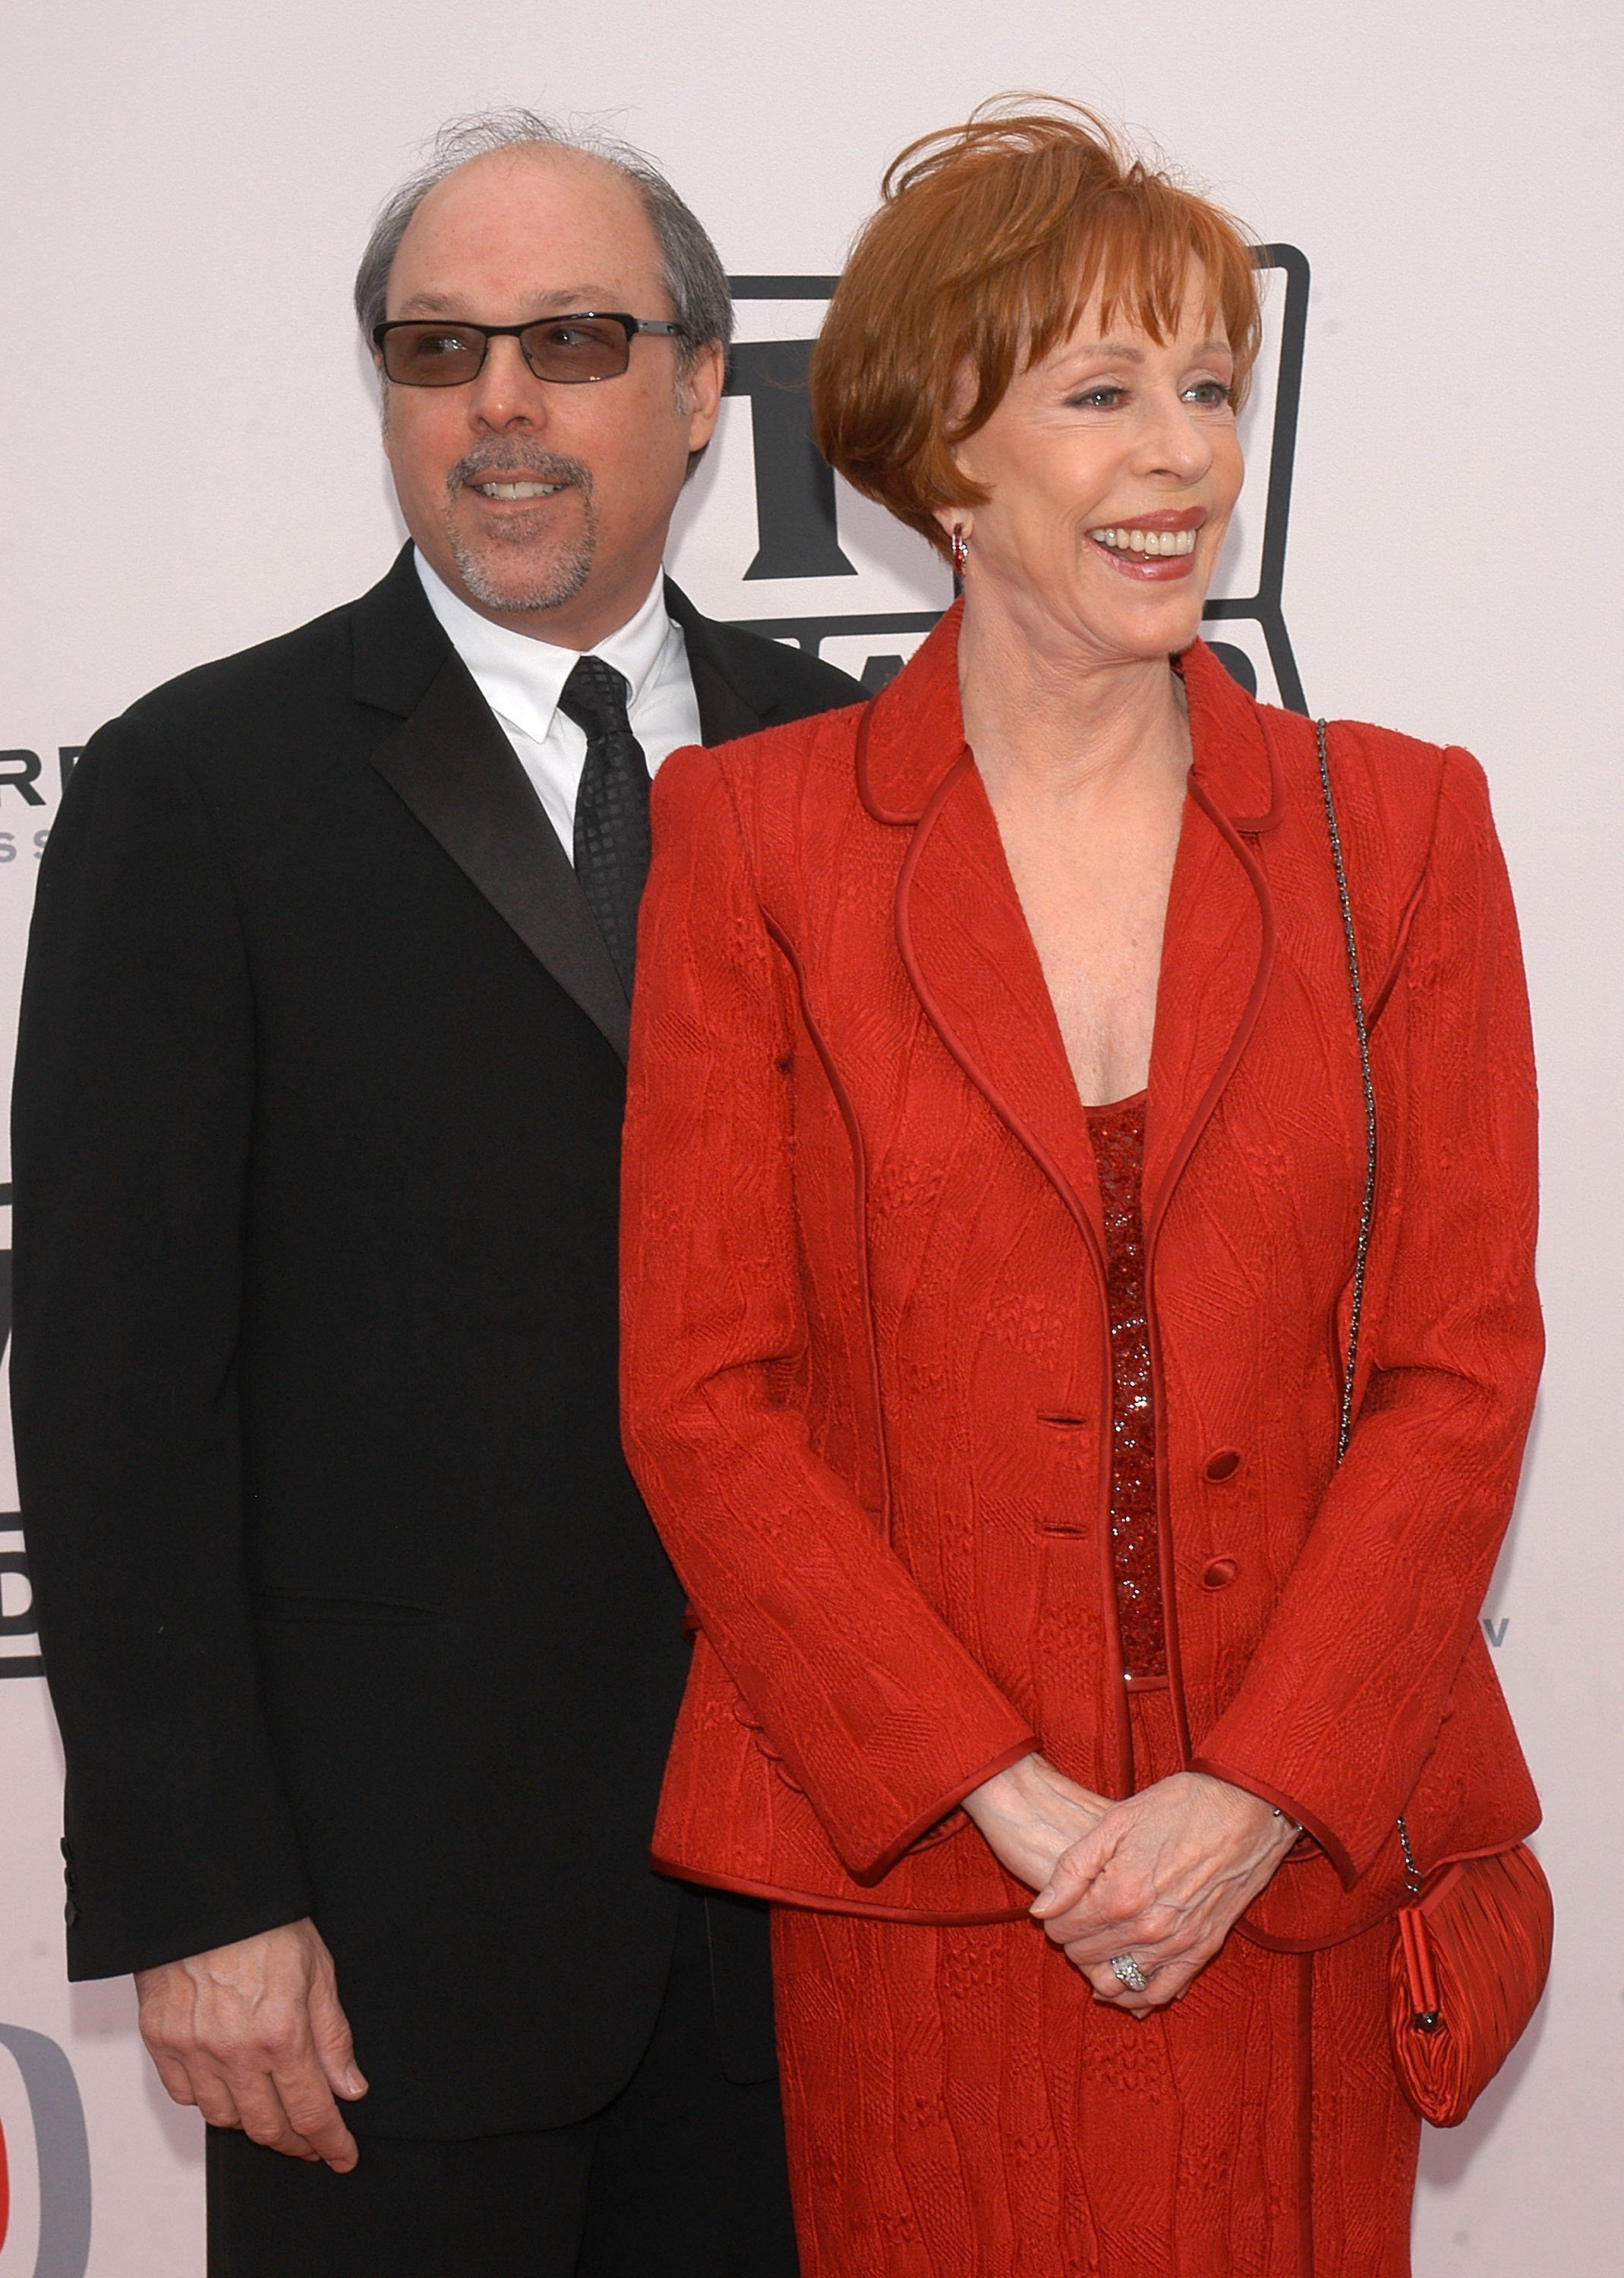 Carol Burnett and Brian Miller at the 2005 TV Land Awards on March 13, 2005 | Photo: GettyImages